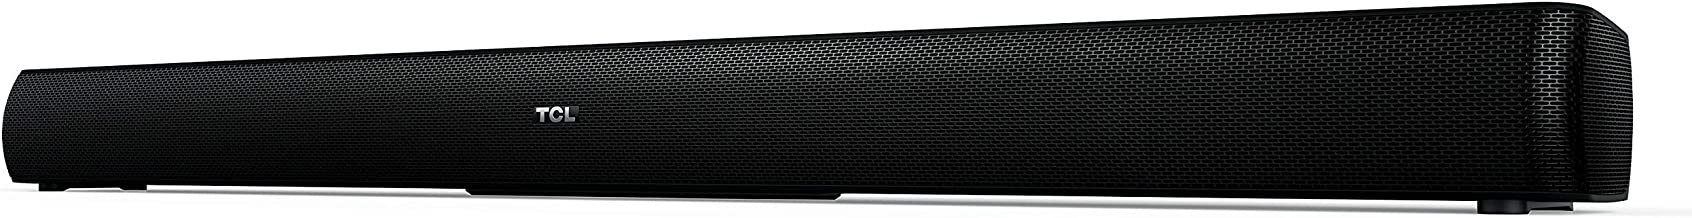 "TCL Alto 5 2.0 Channel Home Theater Sound Bar - Ts5000, 32"", Black"